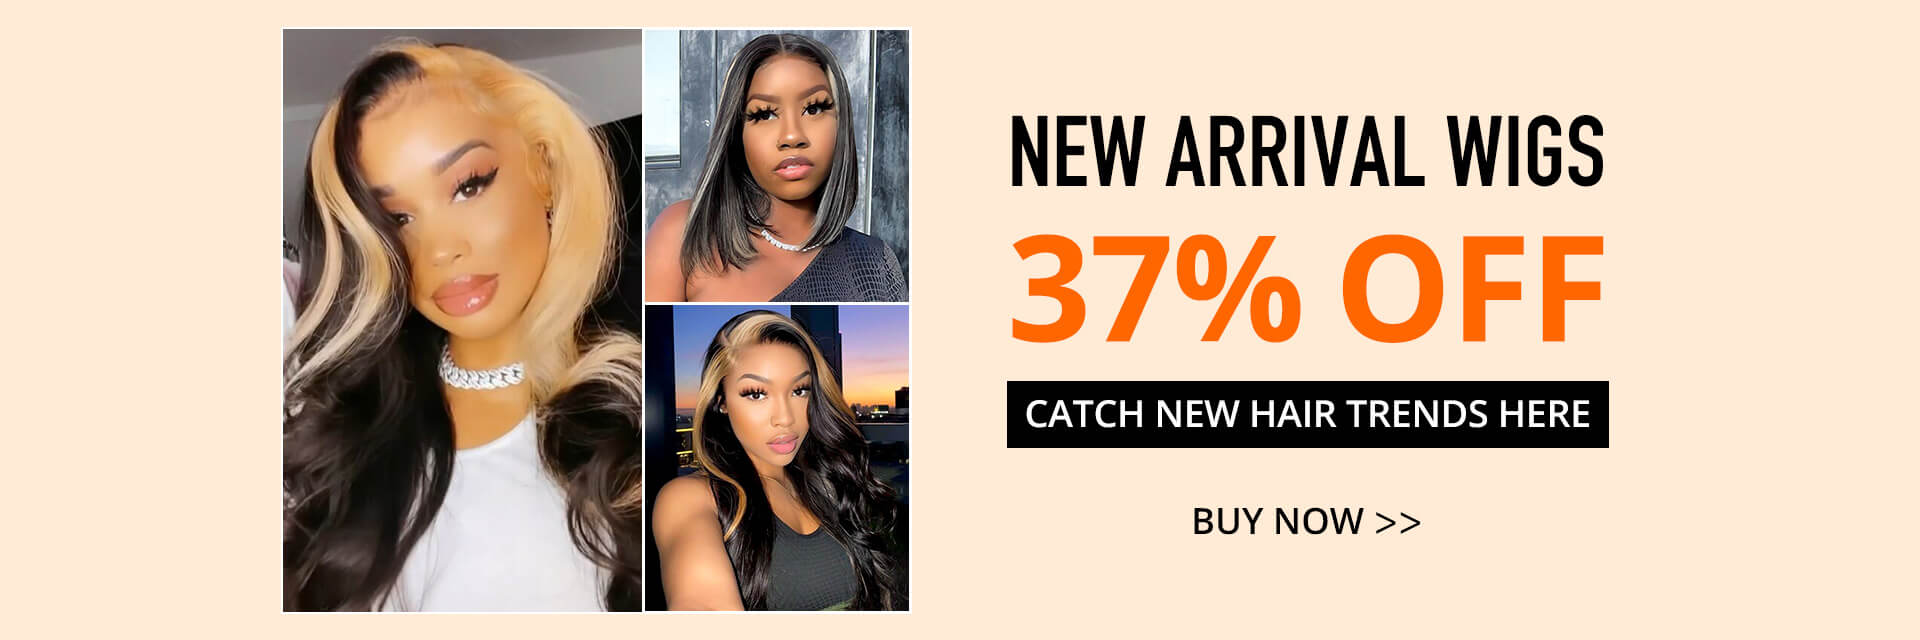 West kiss hair store offers new arrival cheap wigs